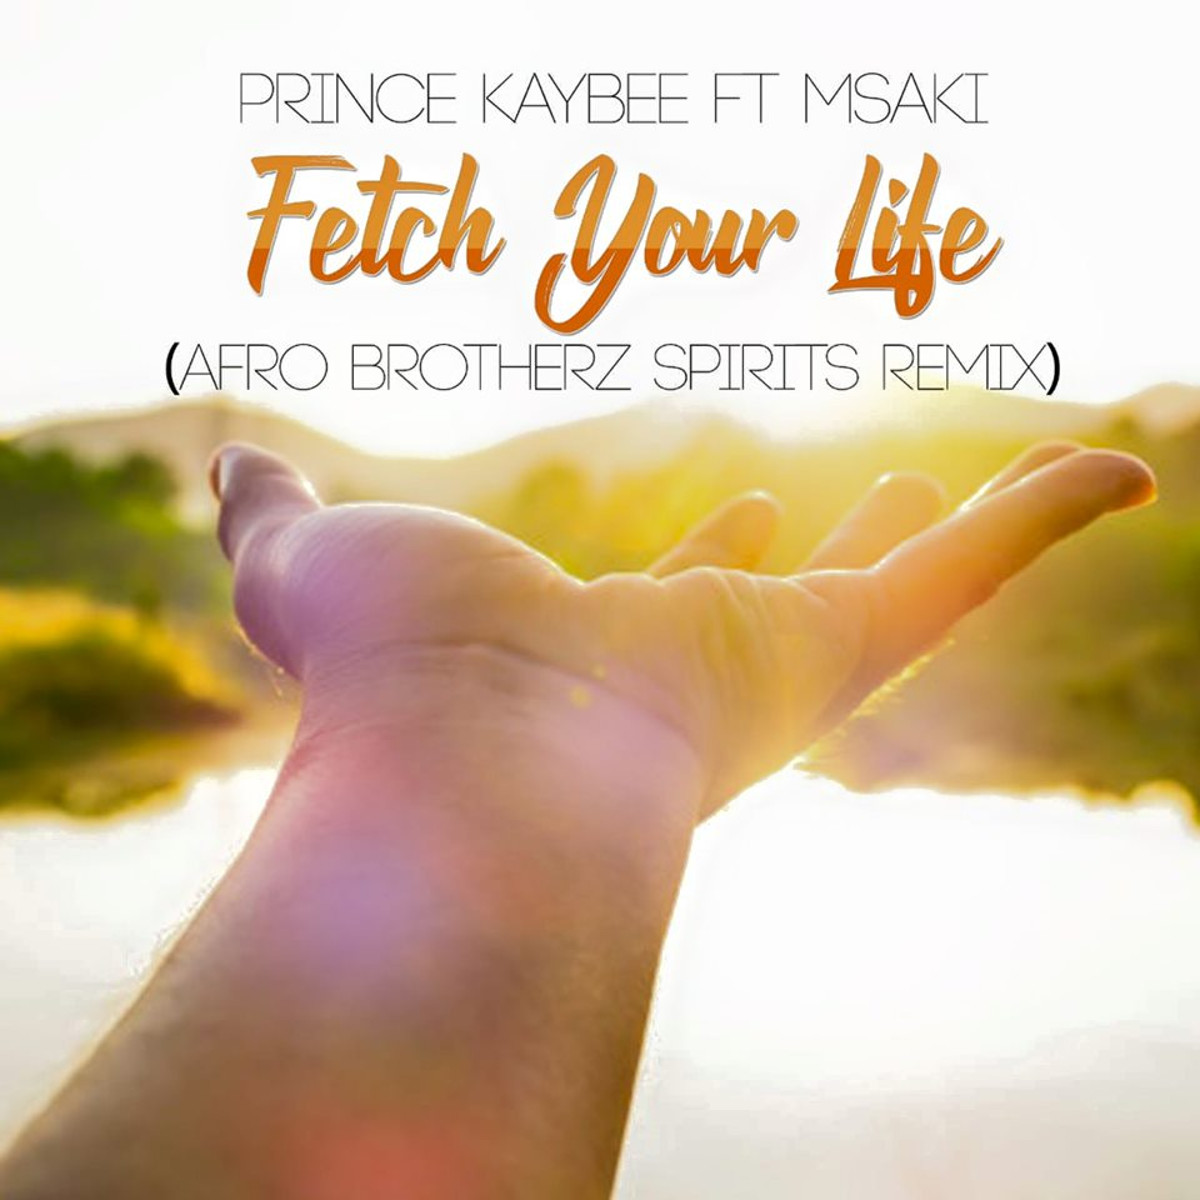 Prince Kaybee, Msaki - Fetch Your Life (Afro Brotherz Spirits Remix)